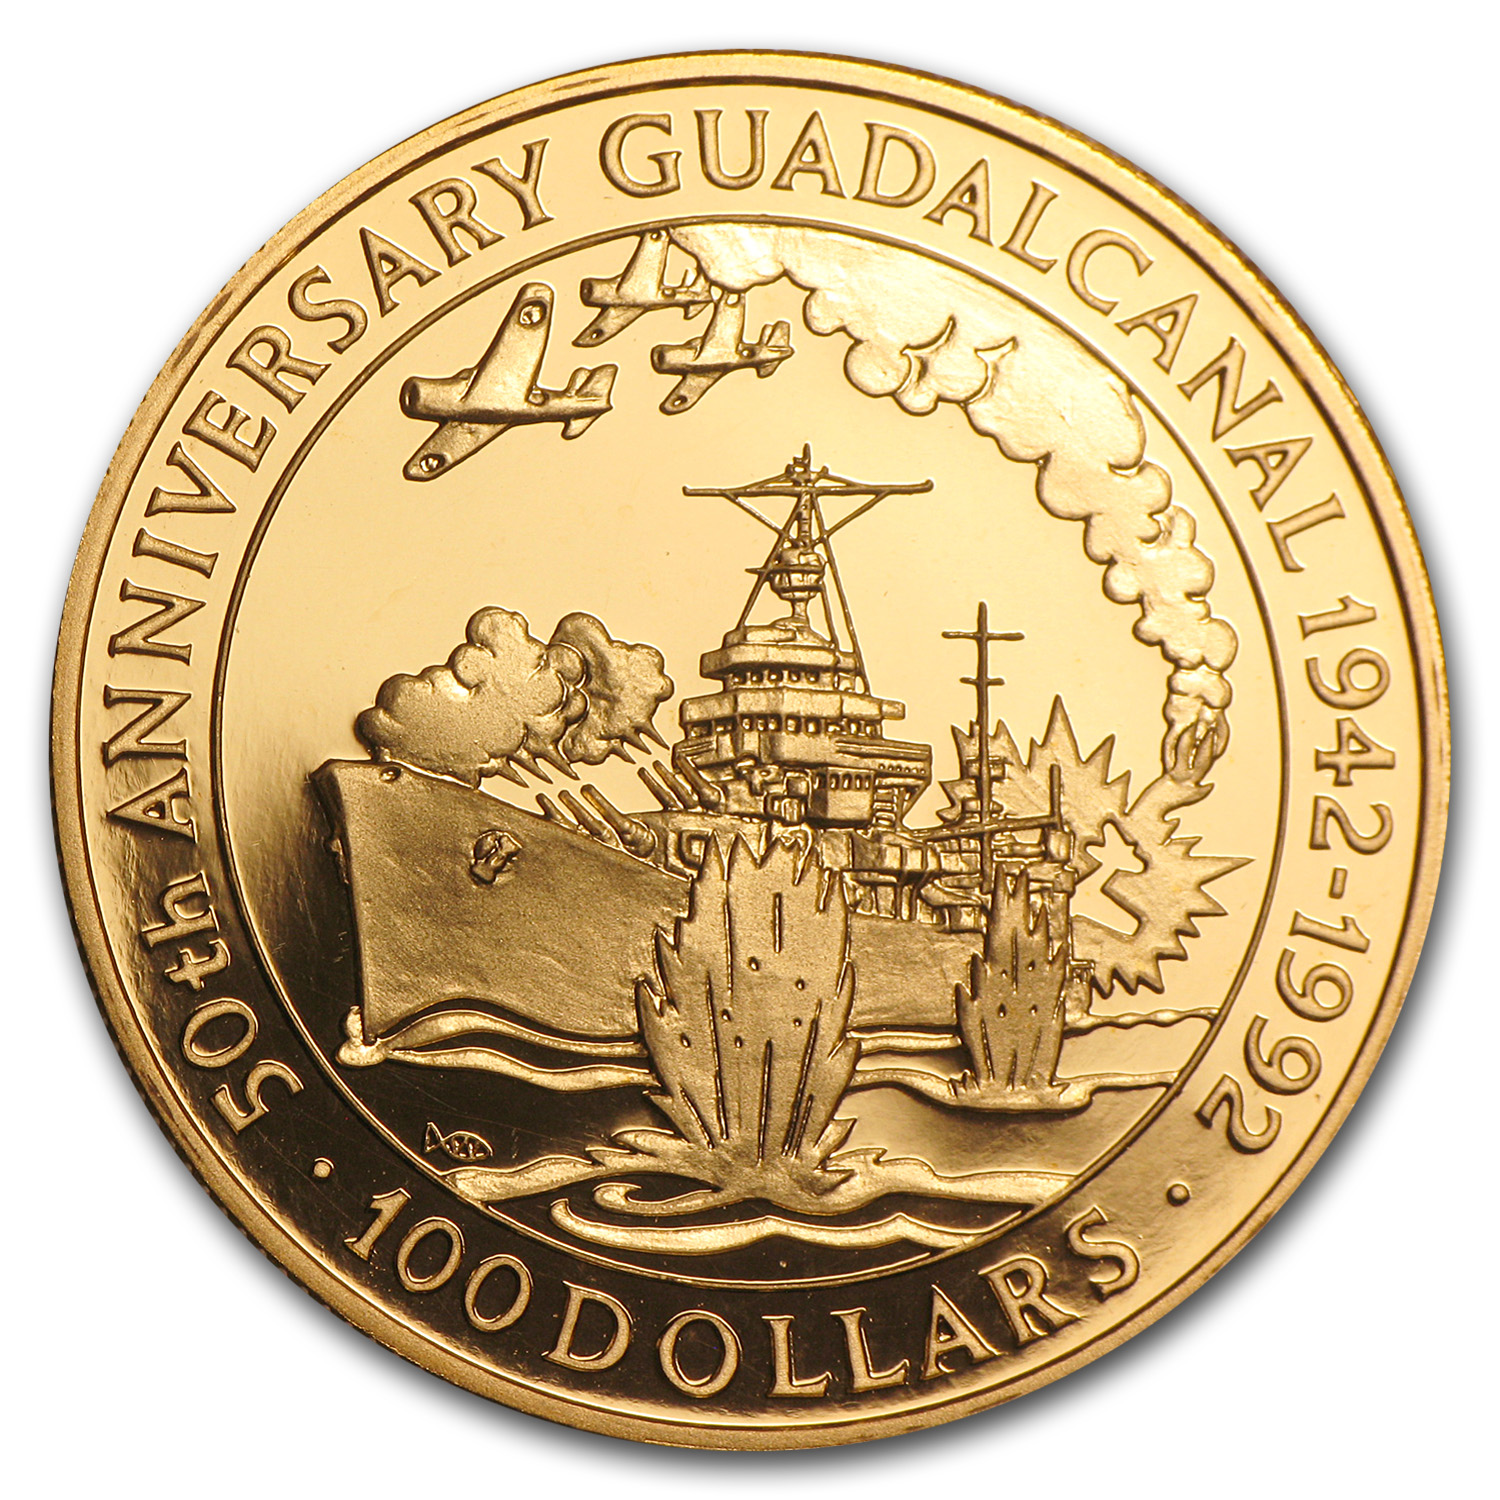 1992 Solomon Islands Proof Gold $100 Battle of Guadalcanal